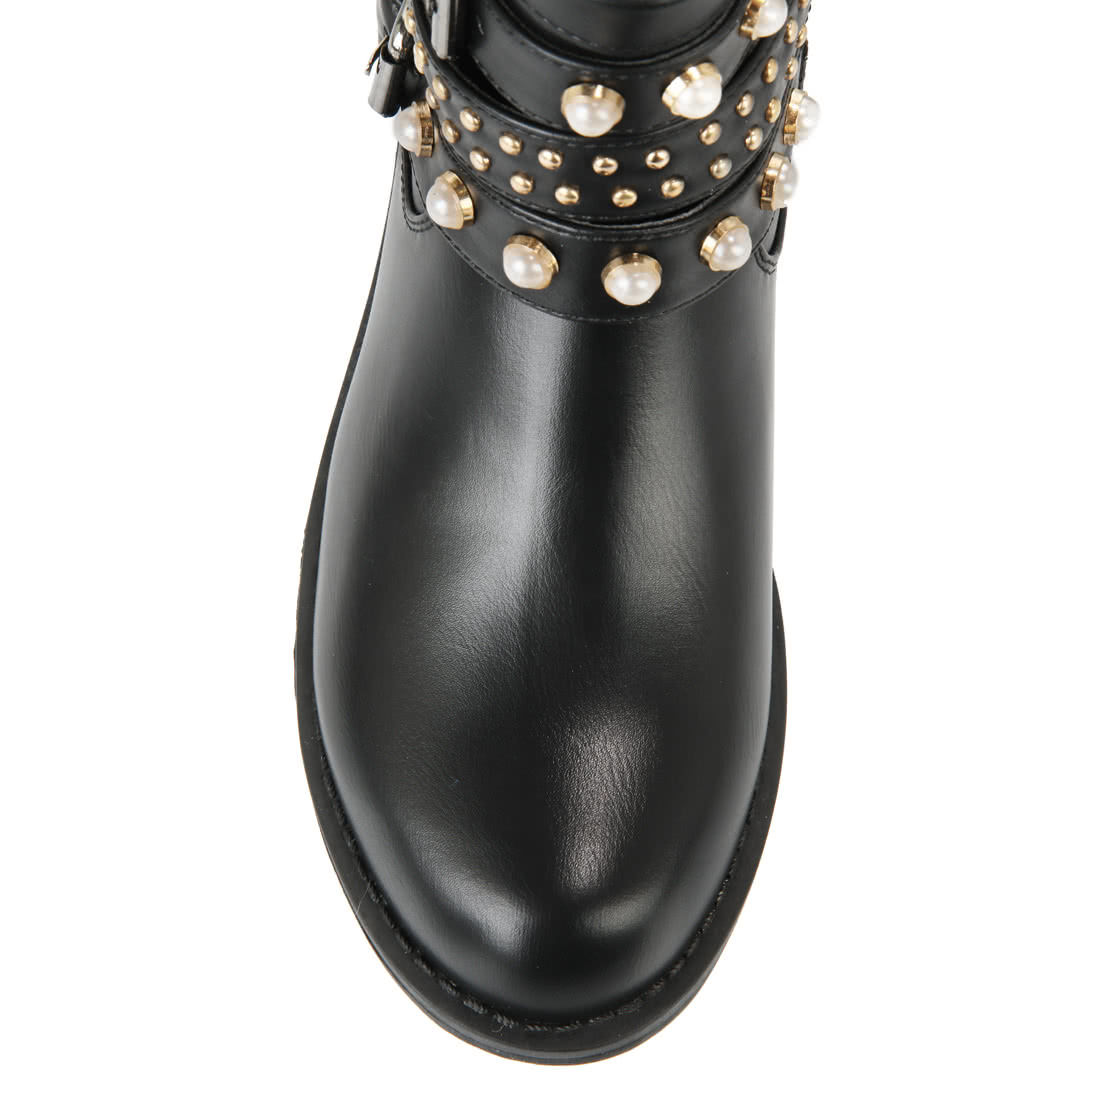 huge selection of 495d9 64e66 Buffalo black boots with beading buy online in BUFFALO ...